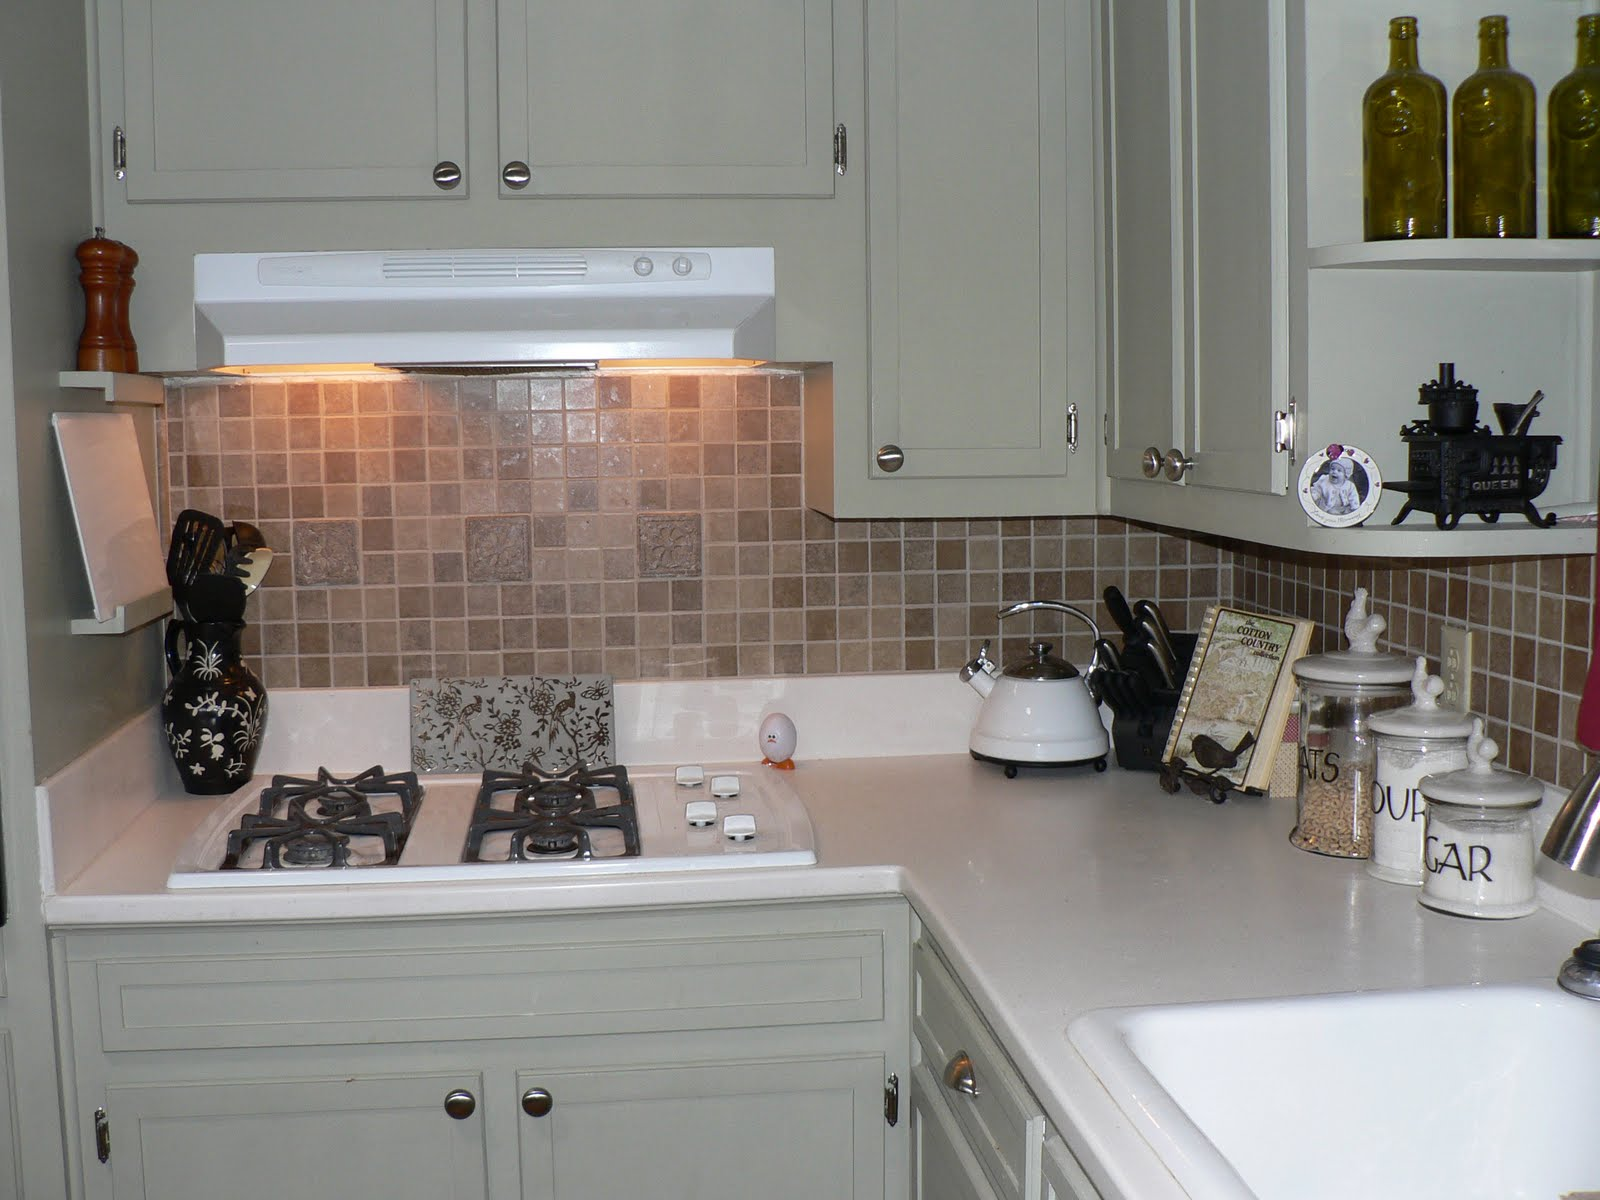 redecorating kitchen kitchen design photos 2015